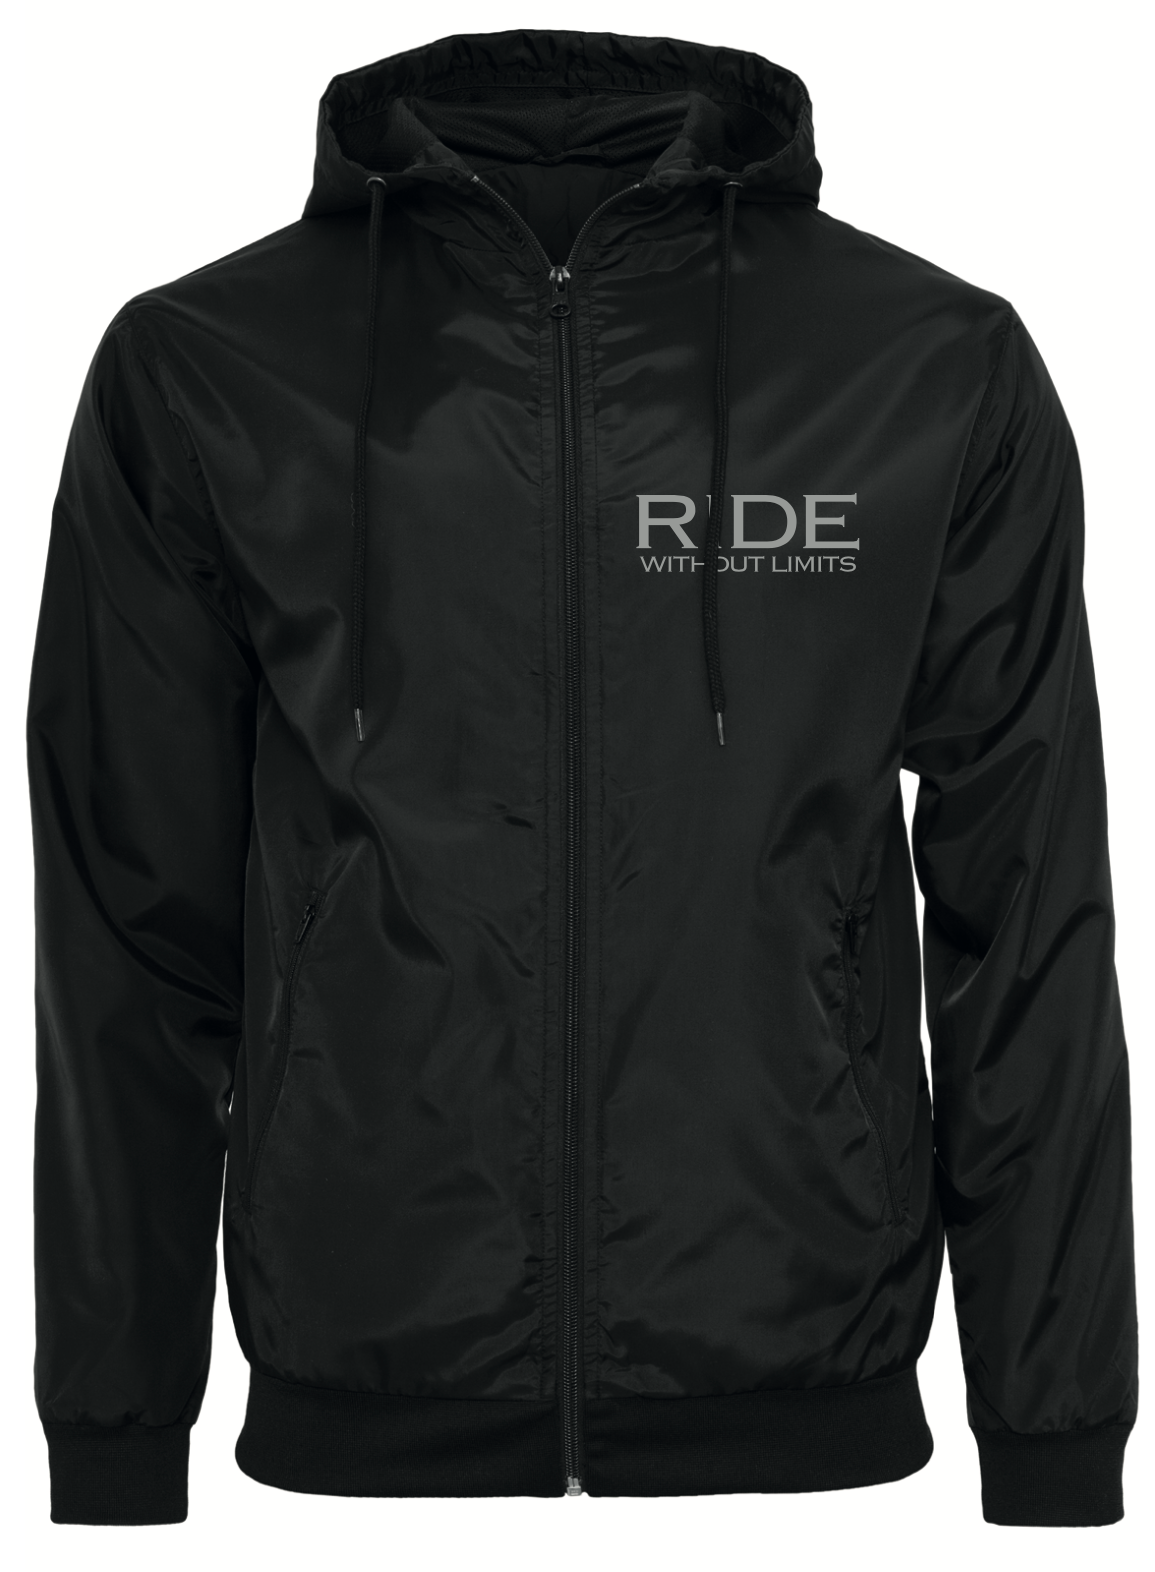 RIDE Without Limits Windrunner - Reflective Silver